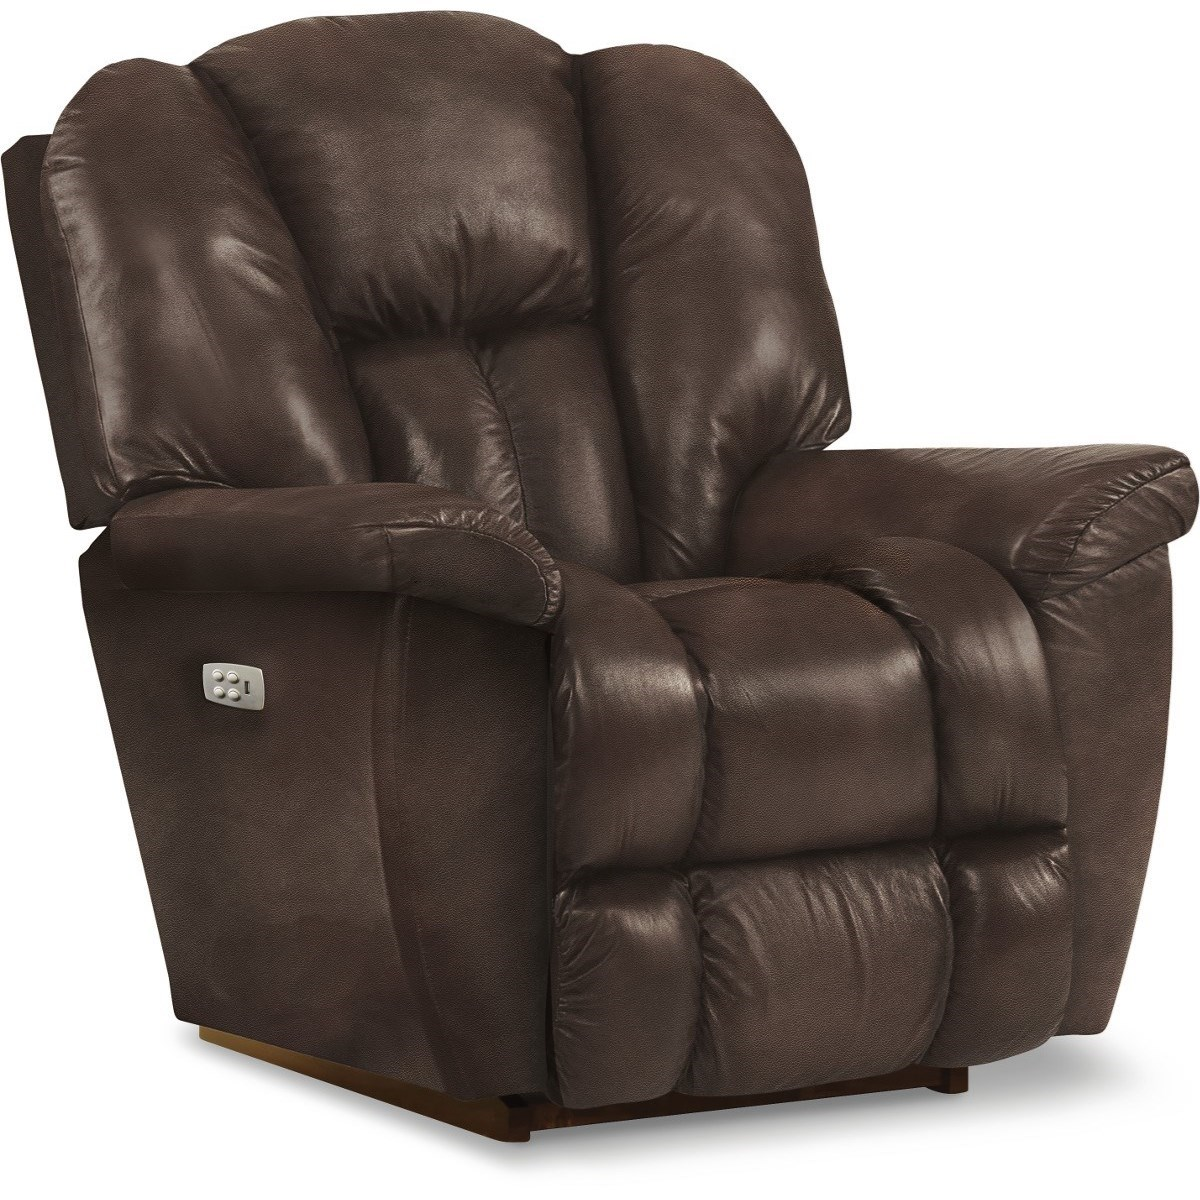 Maverick-582 Power Rocking Recliner w/ Headrest by La-Z-Boy at Lindy's Furniture Company